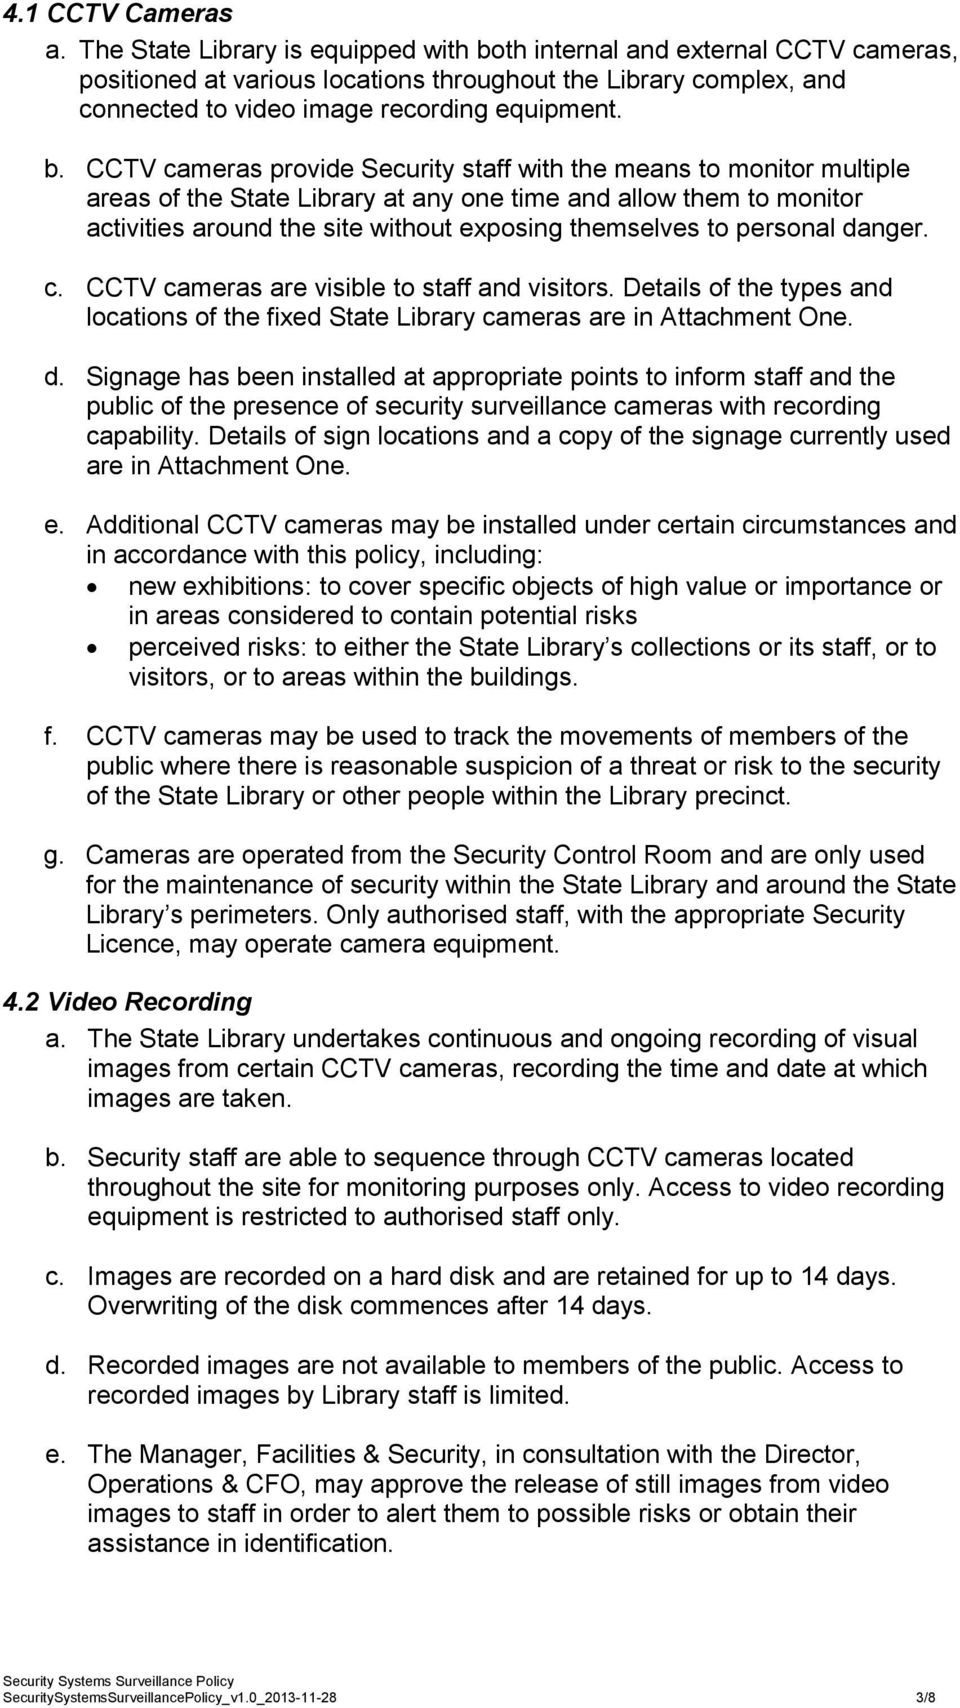 th internal and external CCTV cameras, positioned at various locations throughout the Library complex, and connected to video image recording equipment. b.